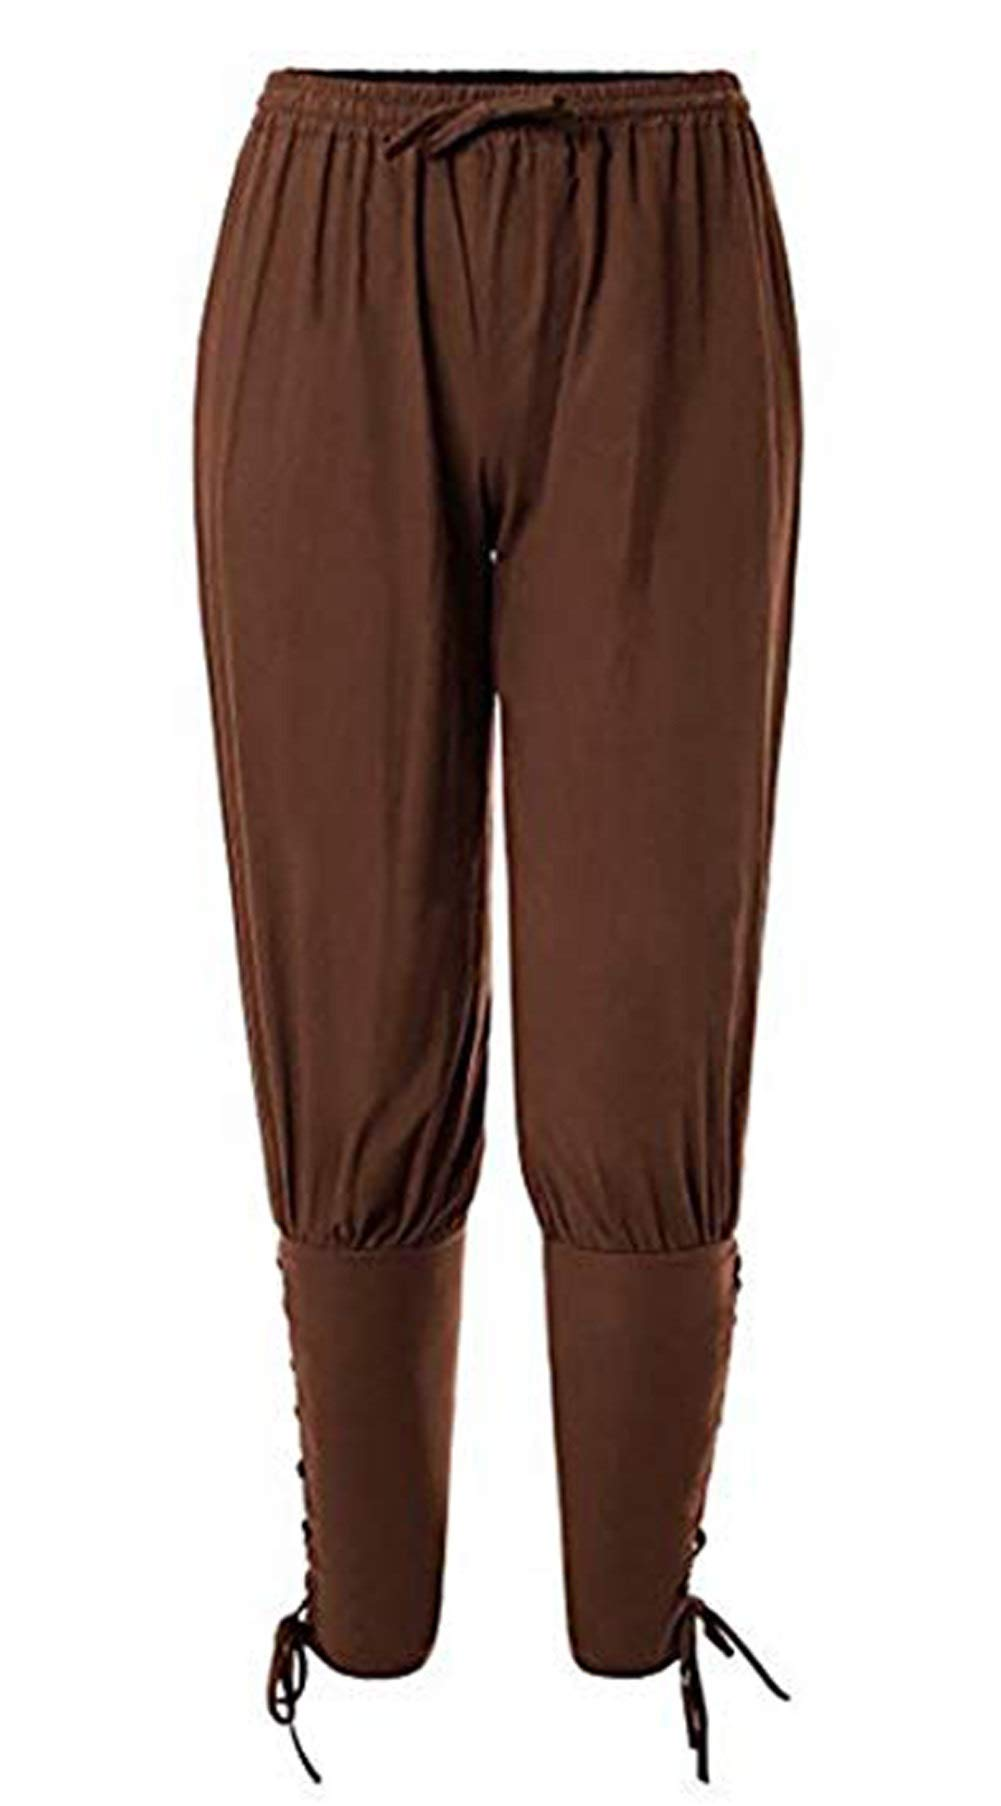 LETSQK Ankle Banded Pants Medieval Viking Navigator Trousers Halloween Costume Brown XL